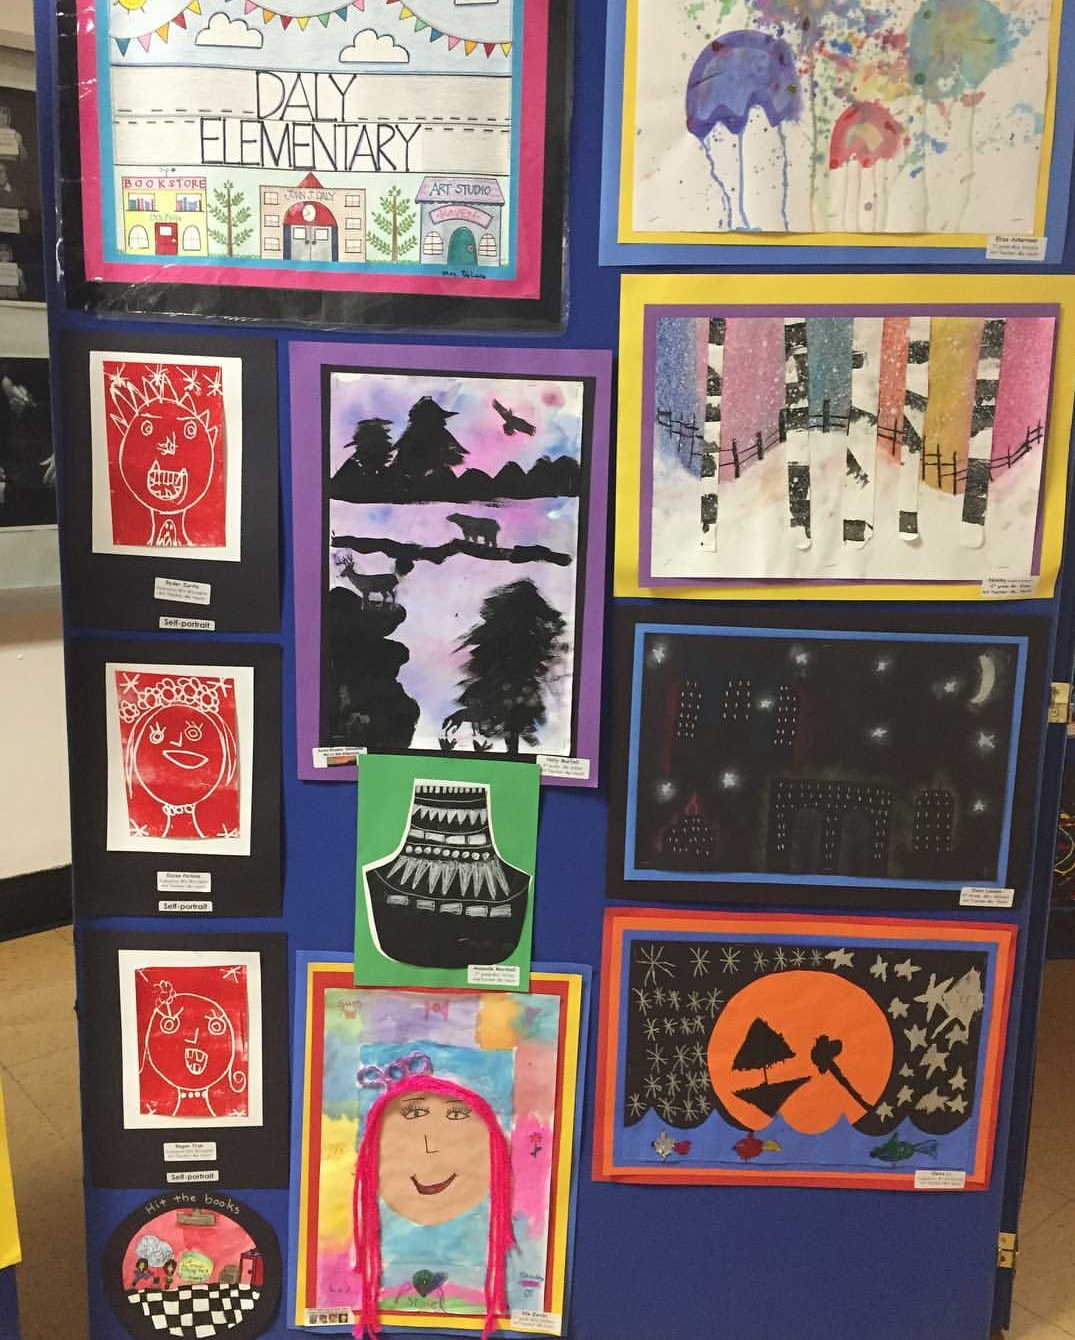 Artwork by students from Daly Elementary School is presented at PortFest. Due to the rain, this year's PortFest celebration took place indoors at Schreiber.